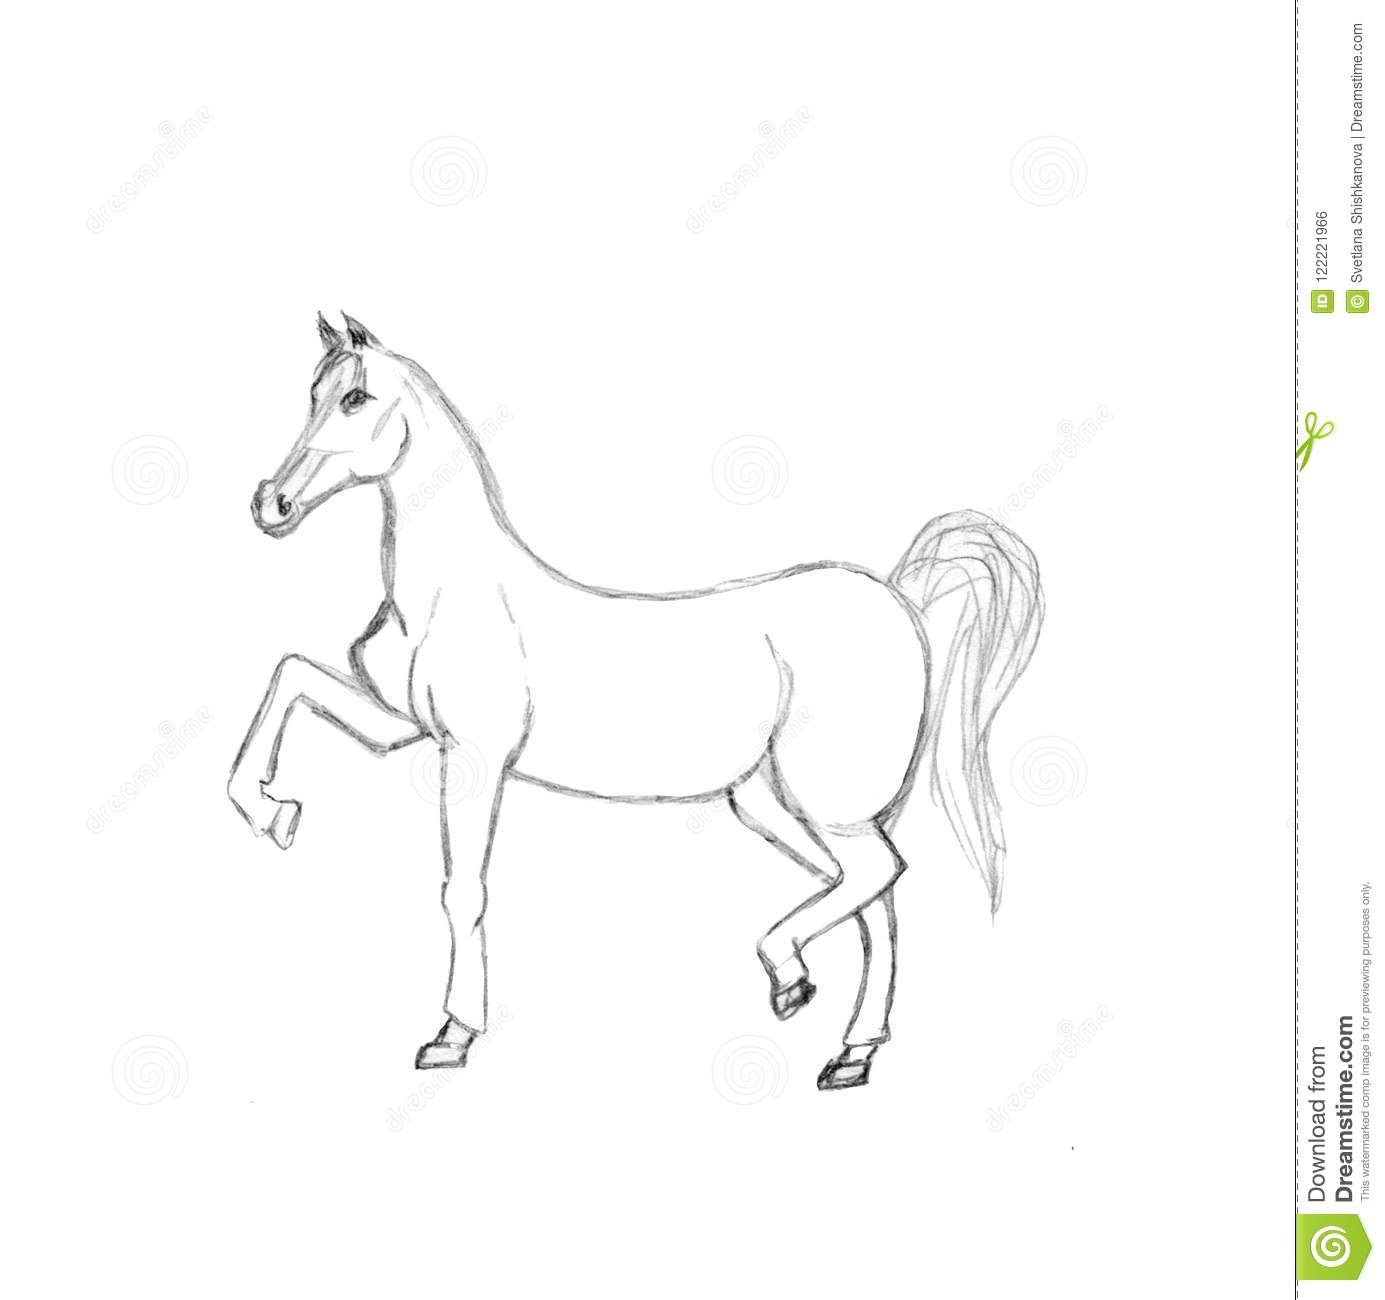 Graphic illustration of horse pencil sketch of stallion isolated on white background hand drawn